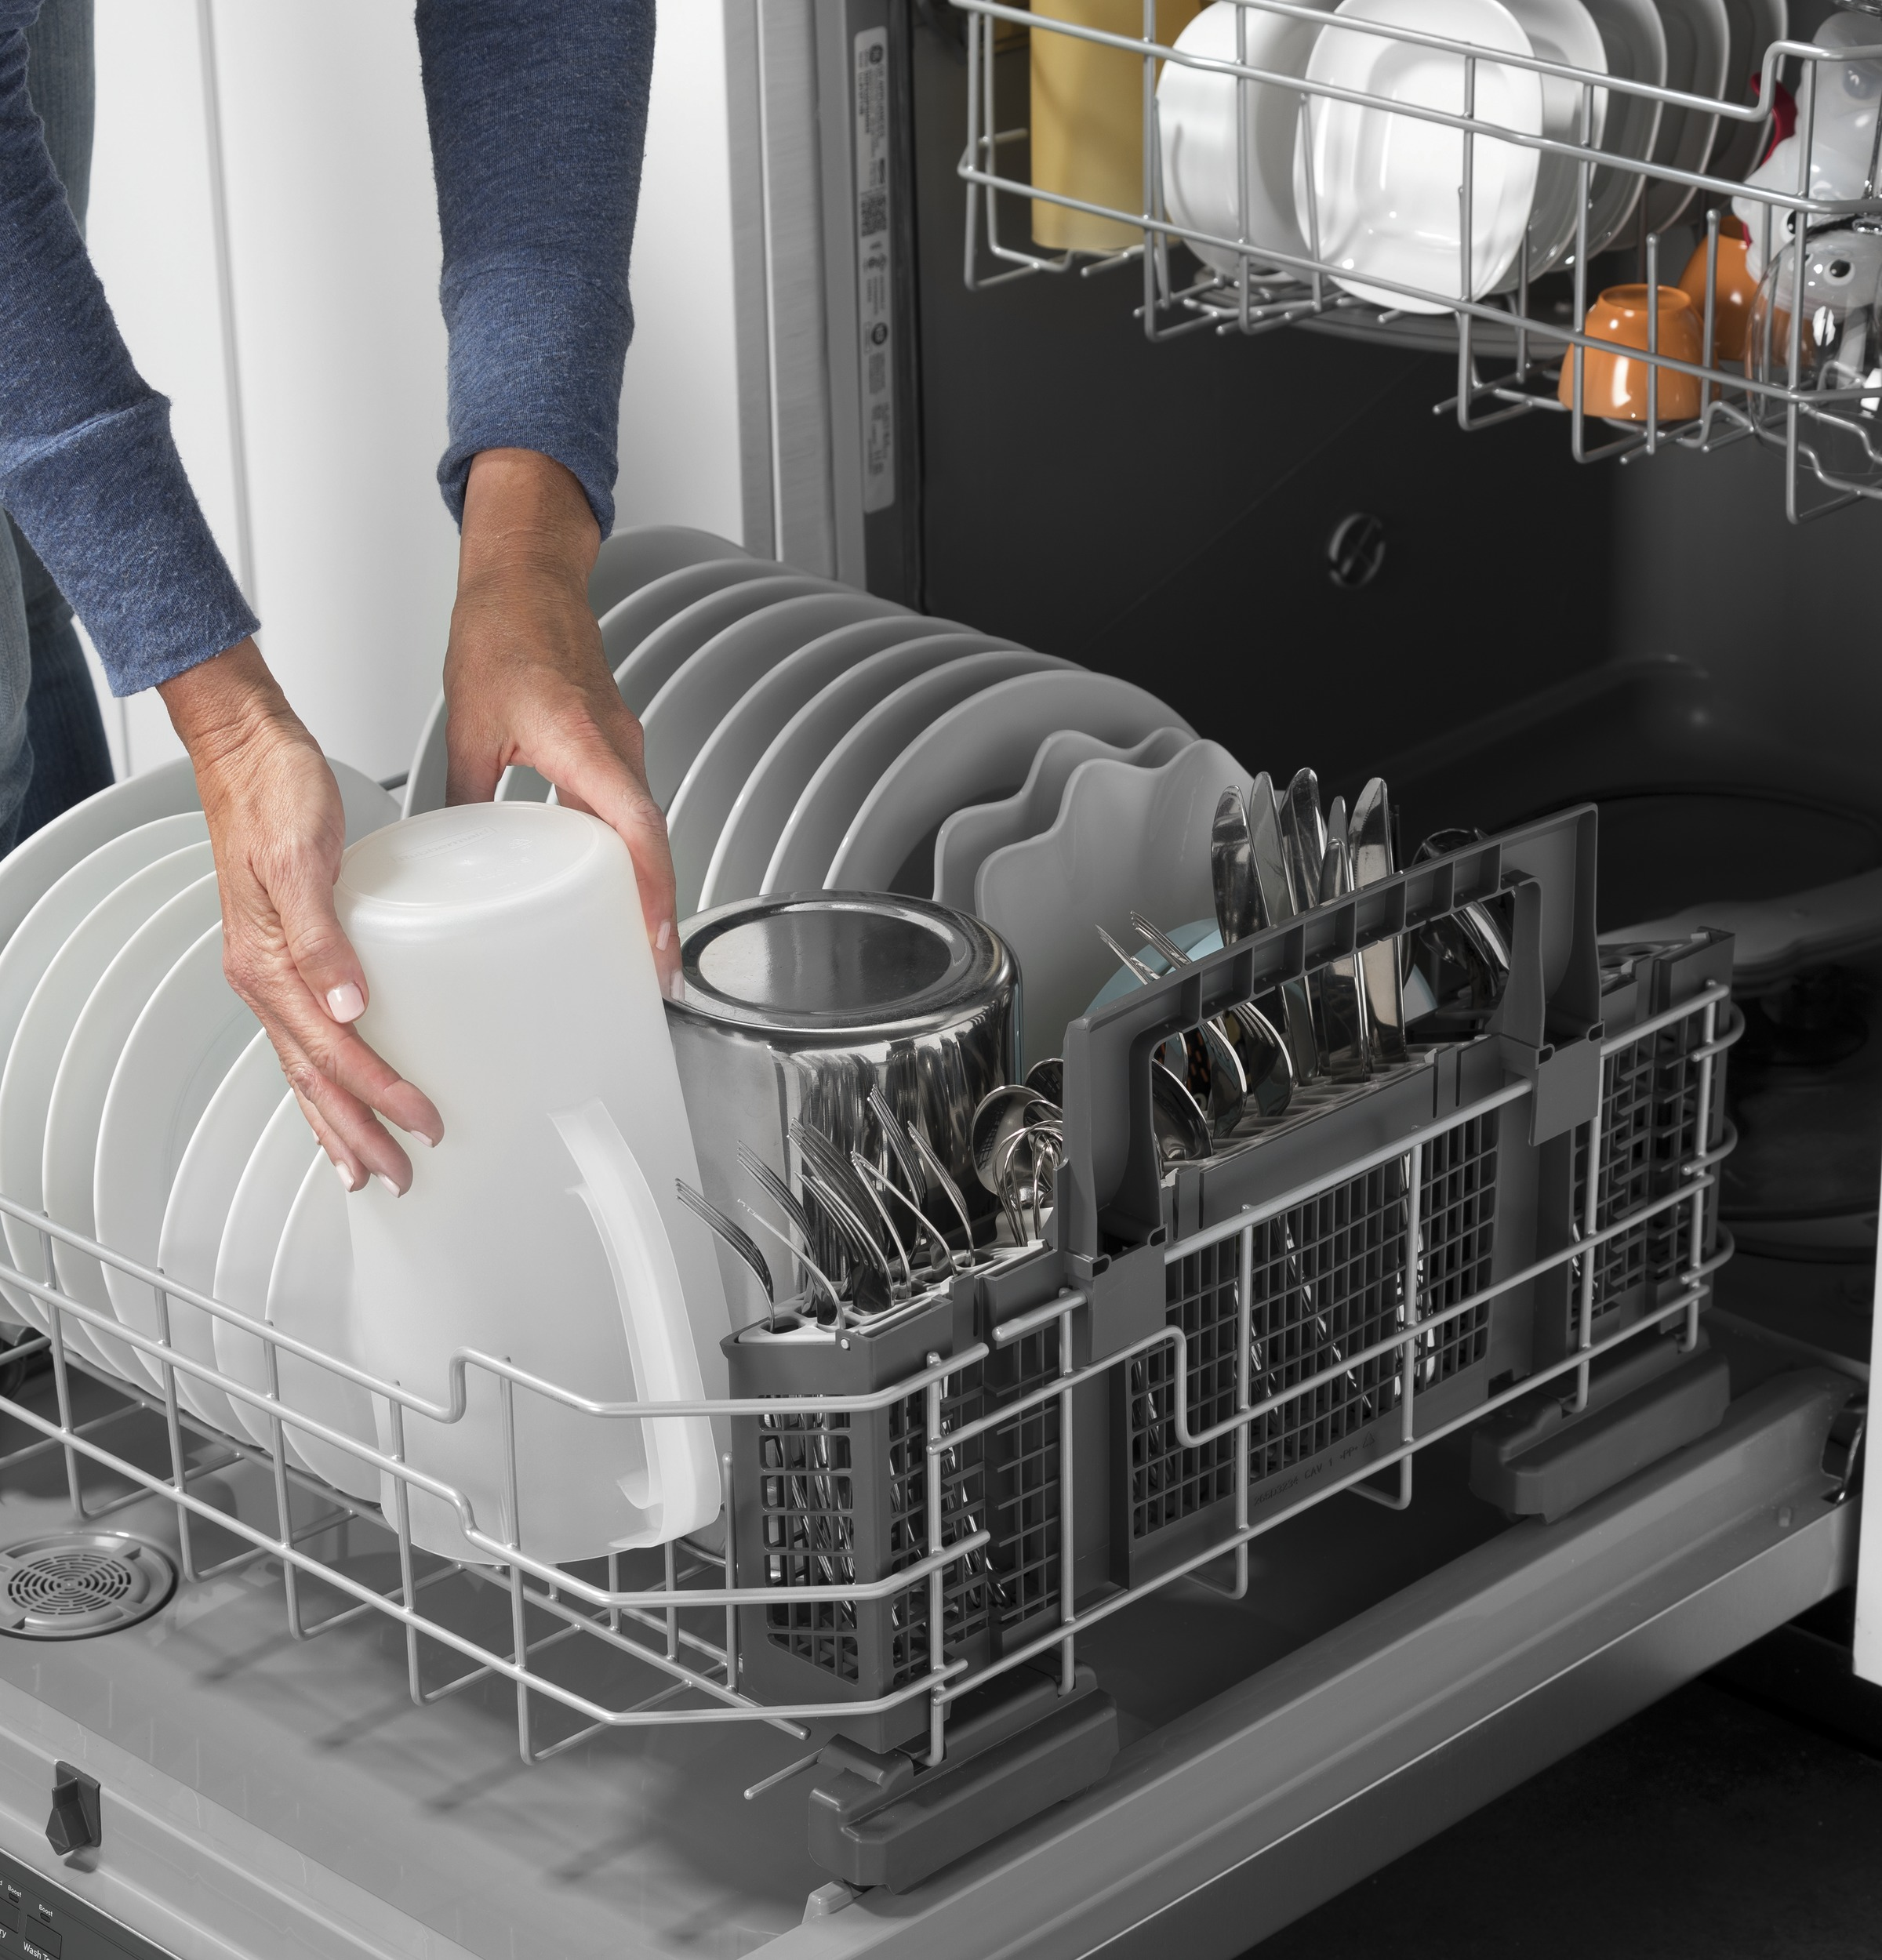 Model: GDF630PMMES   GE GE® Front Control with Plastic Interior Dishwasher with Sanitize Cycle & Dry Boost